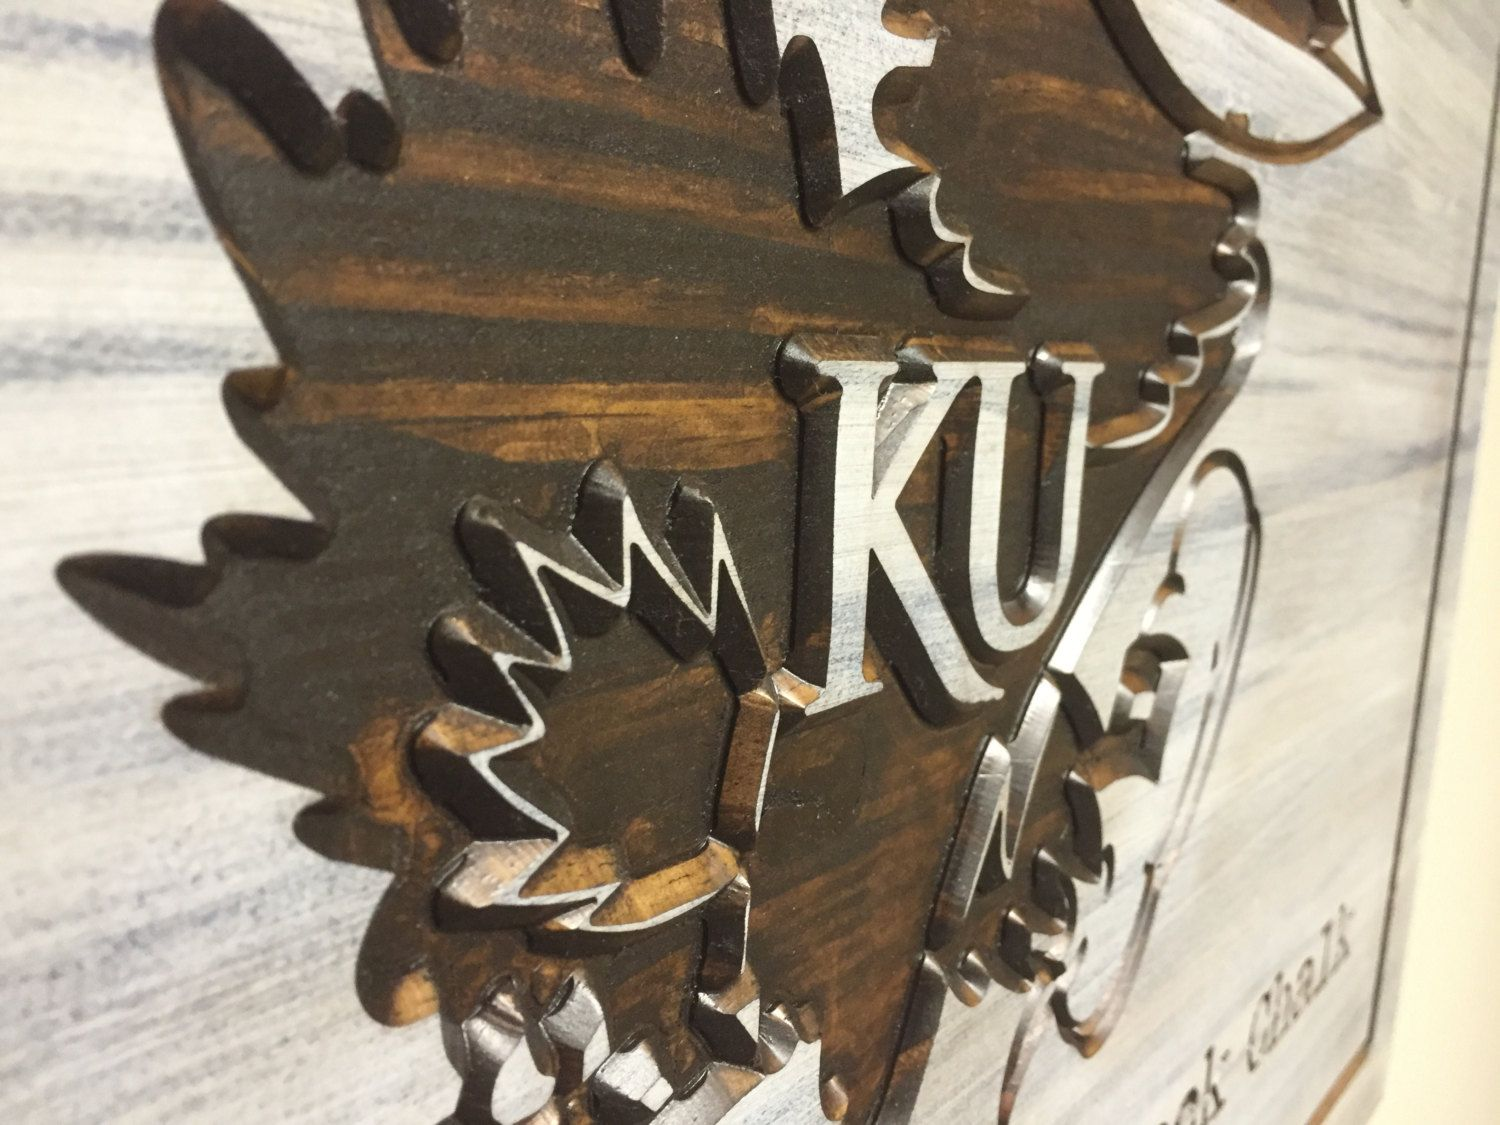 Howdy owl signs kansas jayhawks man cave sign sports wall decor howdy owl signs kansas jayhawks man cave sign sports wall decor basketball amipublicfo Images